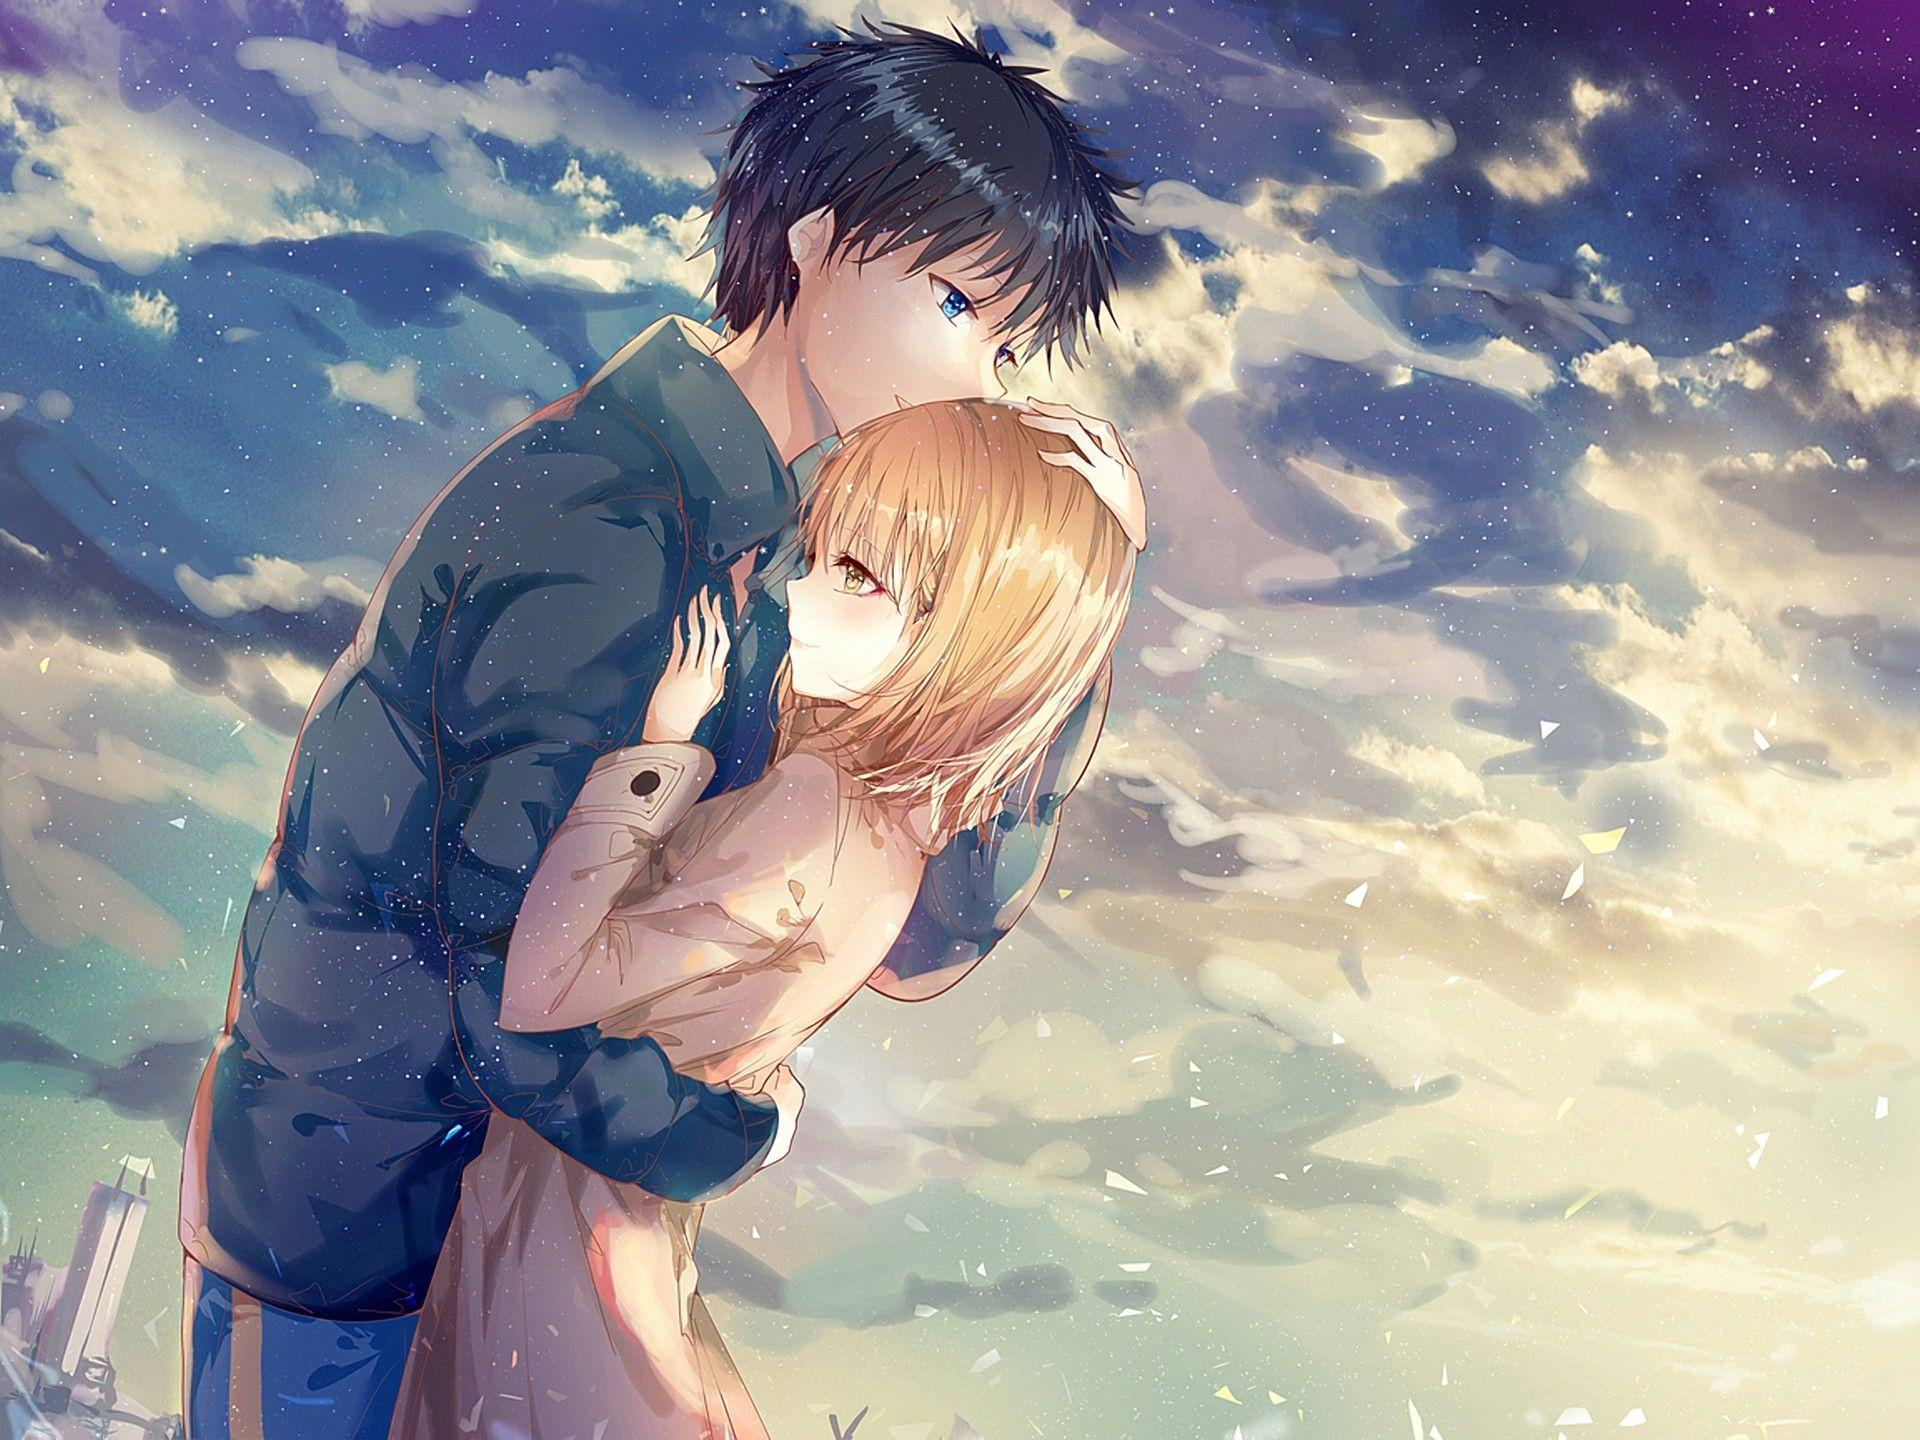 Wallpapers Anime Romantis Wallpaper Cave